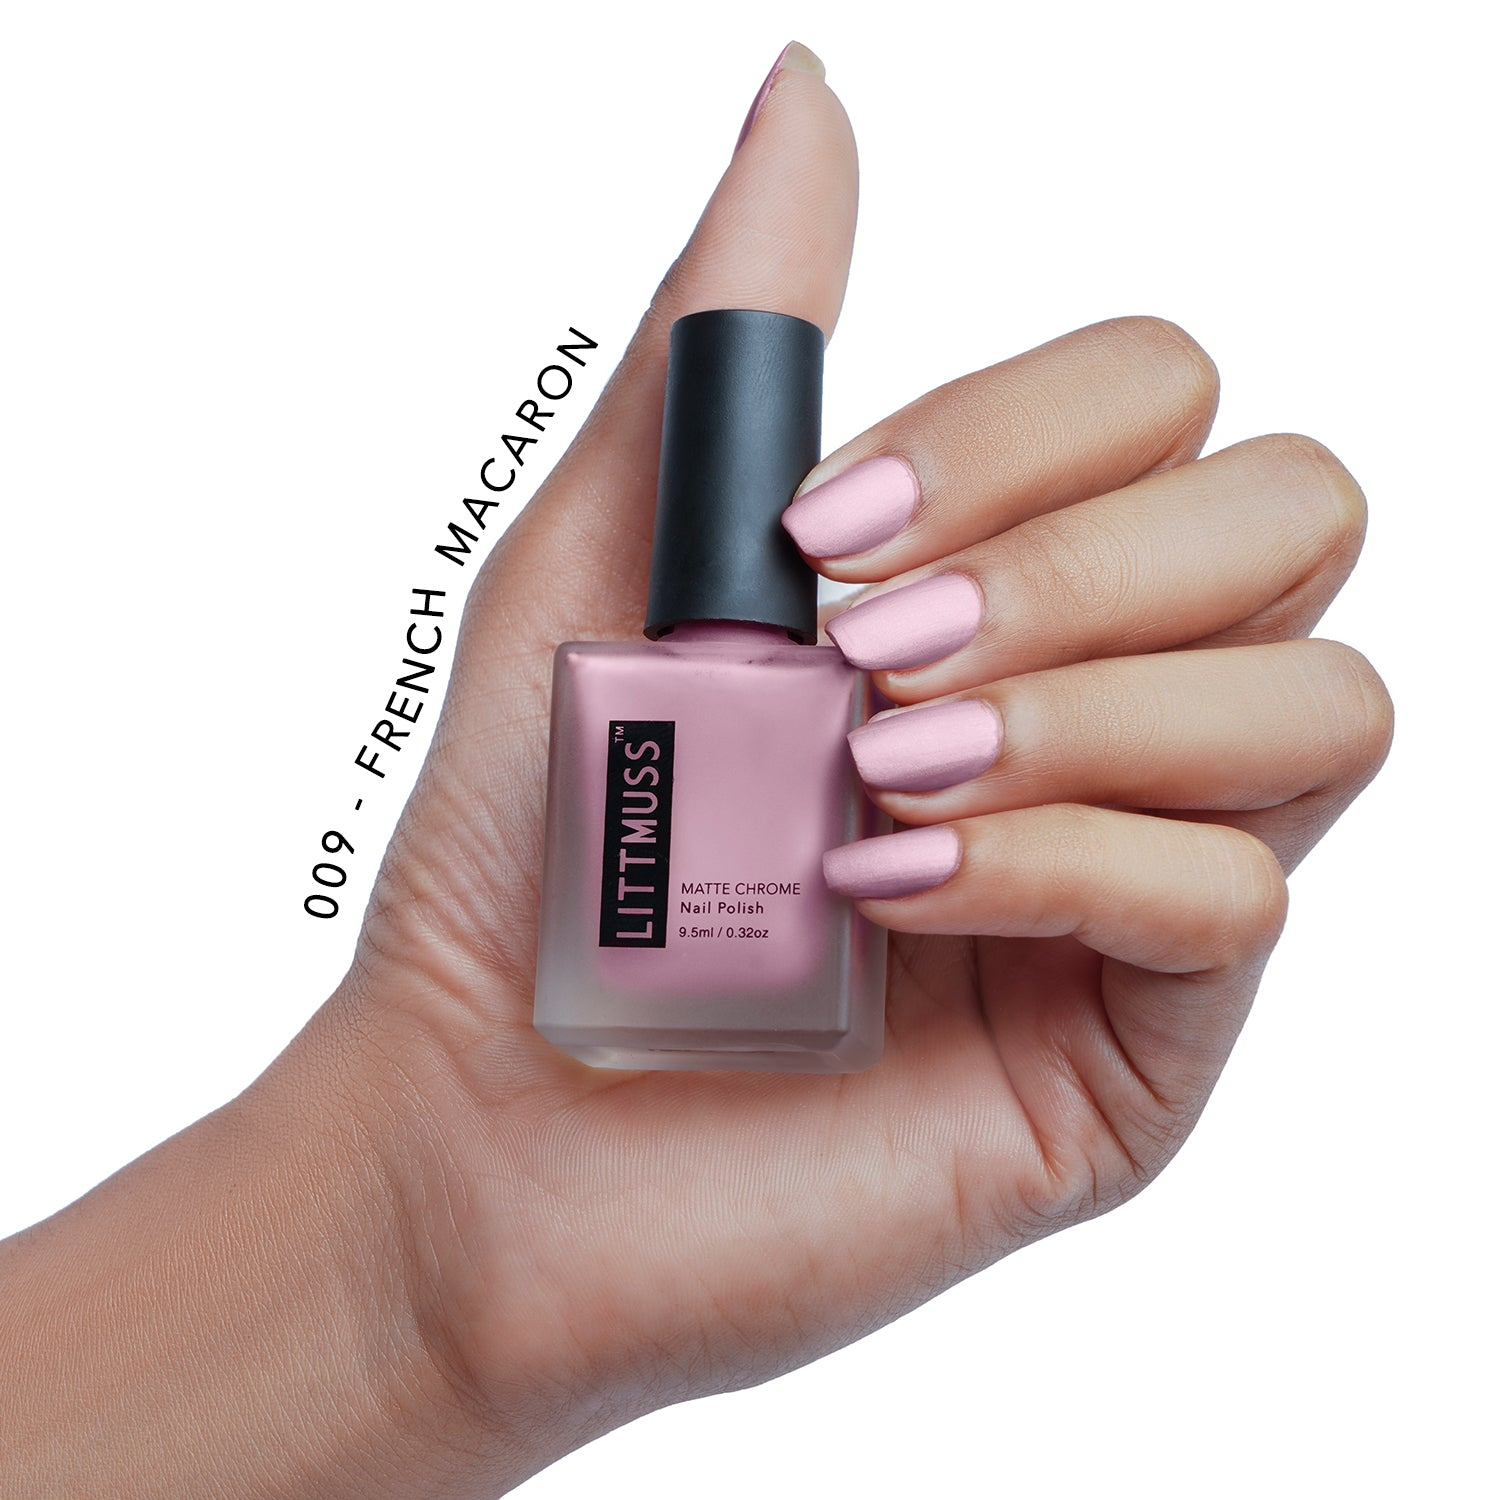 LITTMUSS Matte Chrome Nail Polish Lovely Lavender Combo